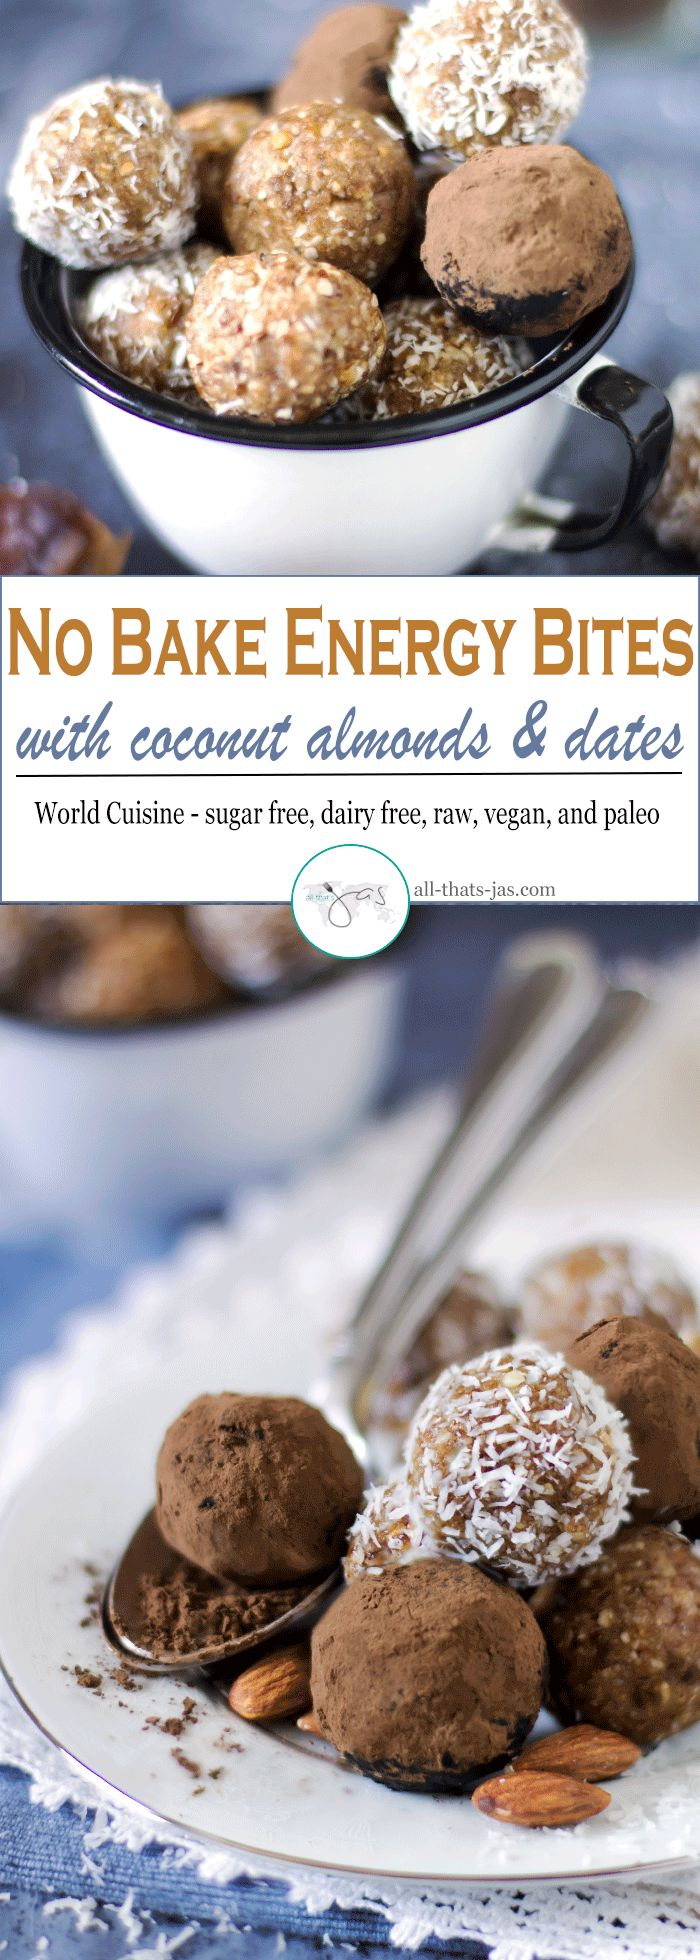 These easy, no bake energy bites with coconut, almond, and dates are perfect on-the-go sweet snacks with a healthy dose of fiber. They are sugar and gluten free, vegan, and paleo approved.